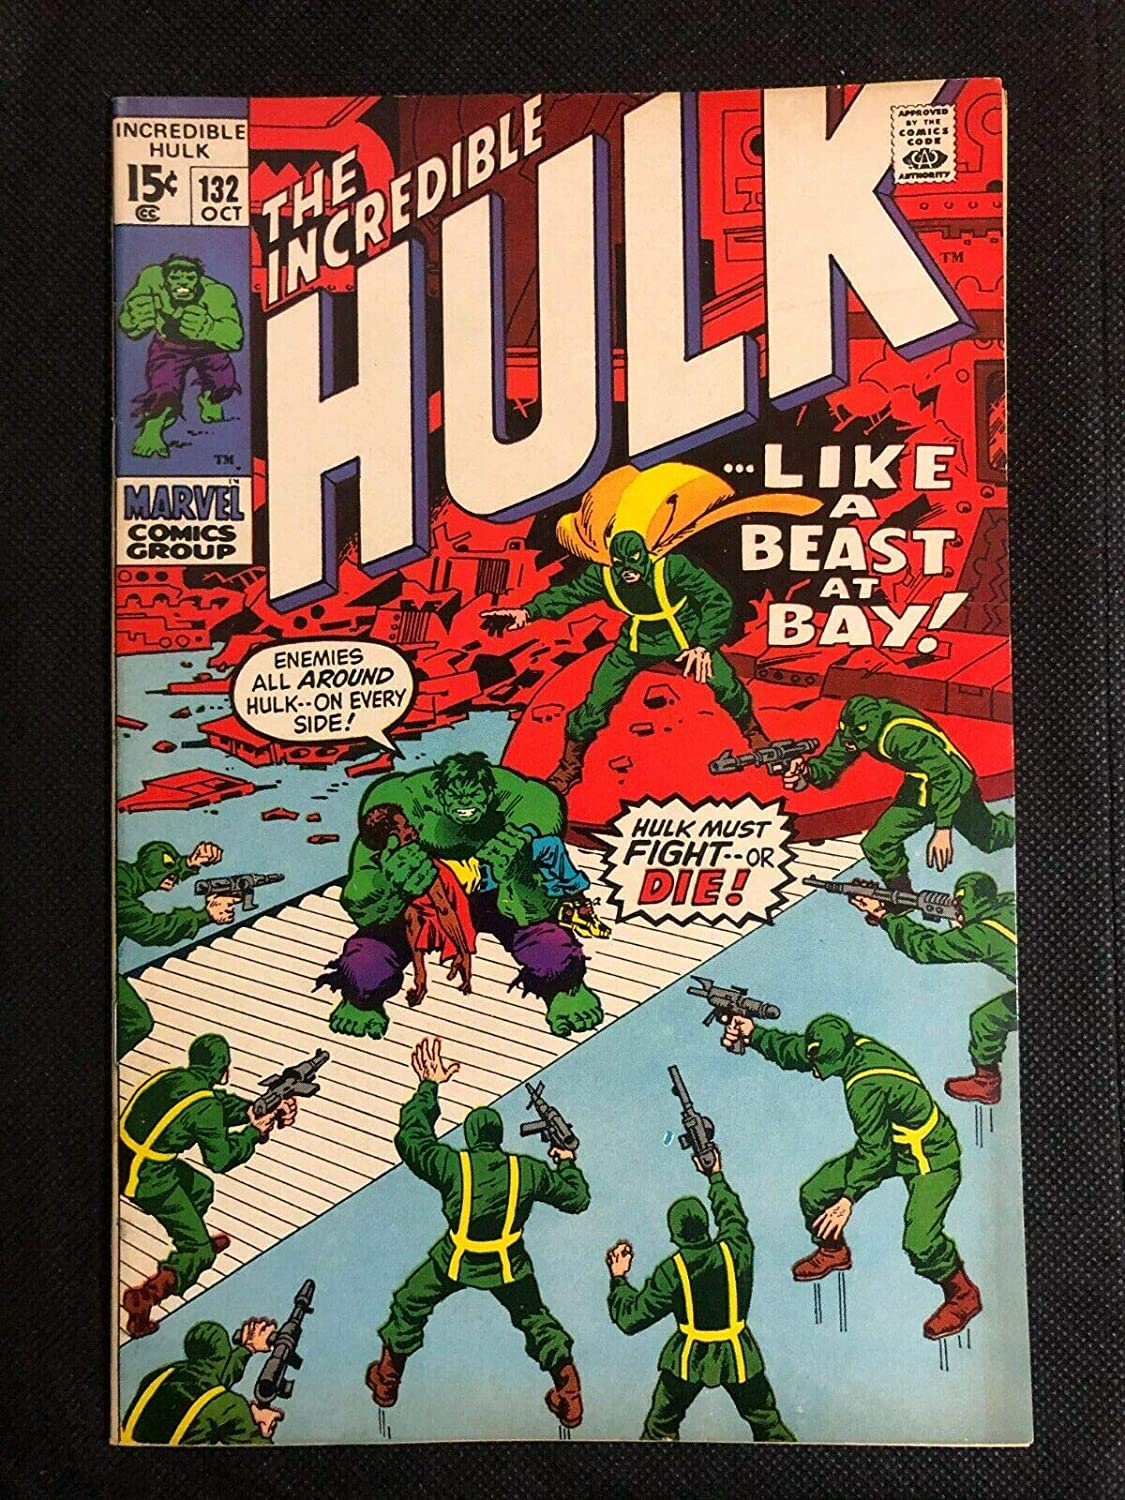 Incredible Hulk 1968 Max 51% OFF #132 VF Hydra 8.0 Trimpe In stock Herb